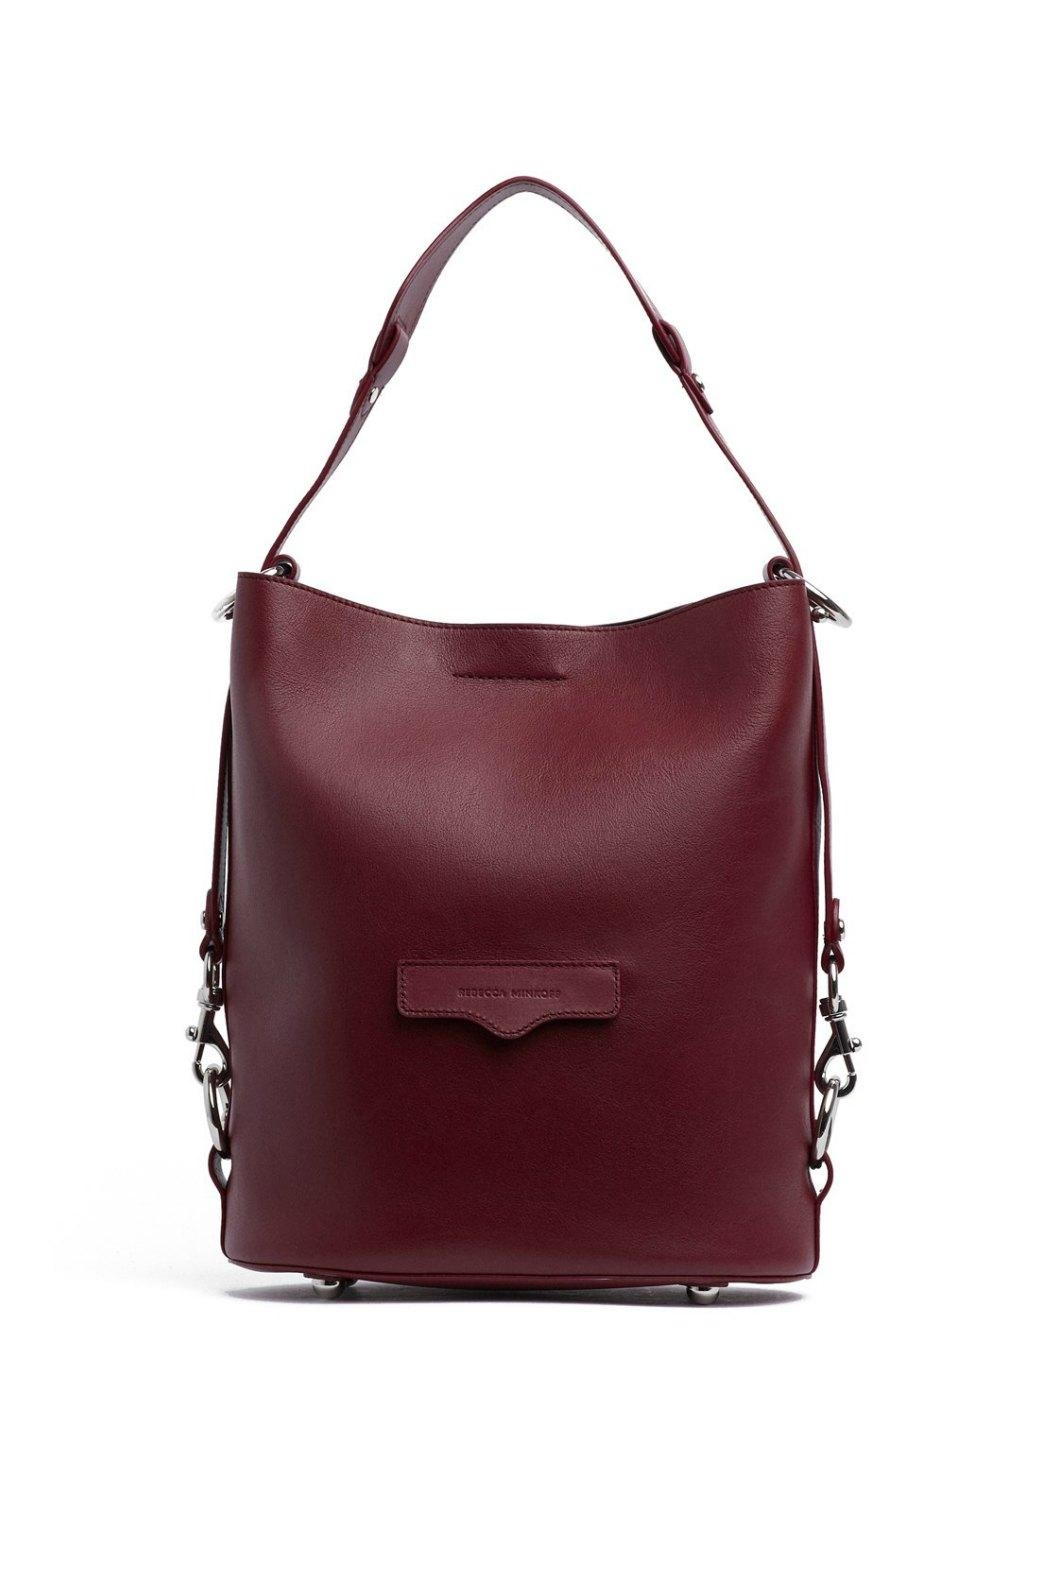 Rebecca Minkoff Utility Convertible Bucket-Bag - Main Image